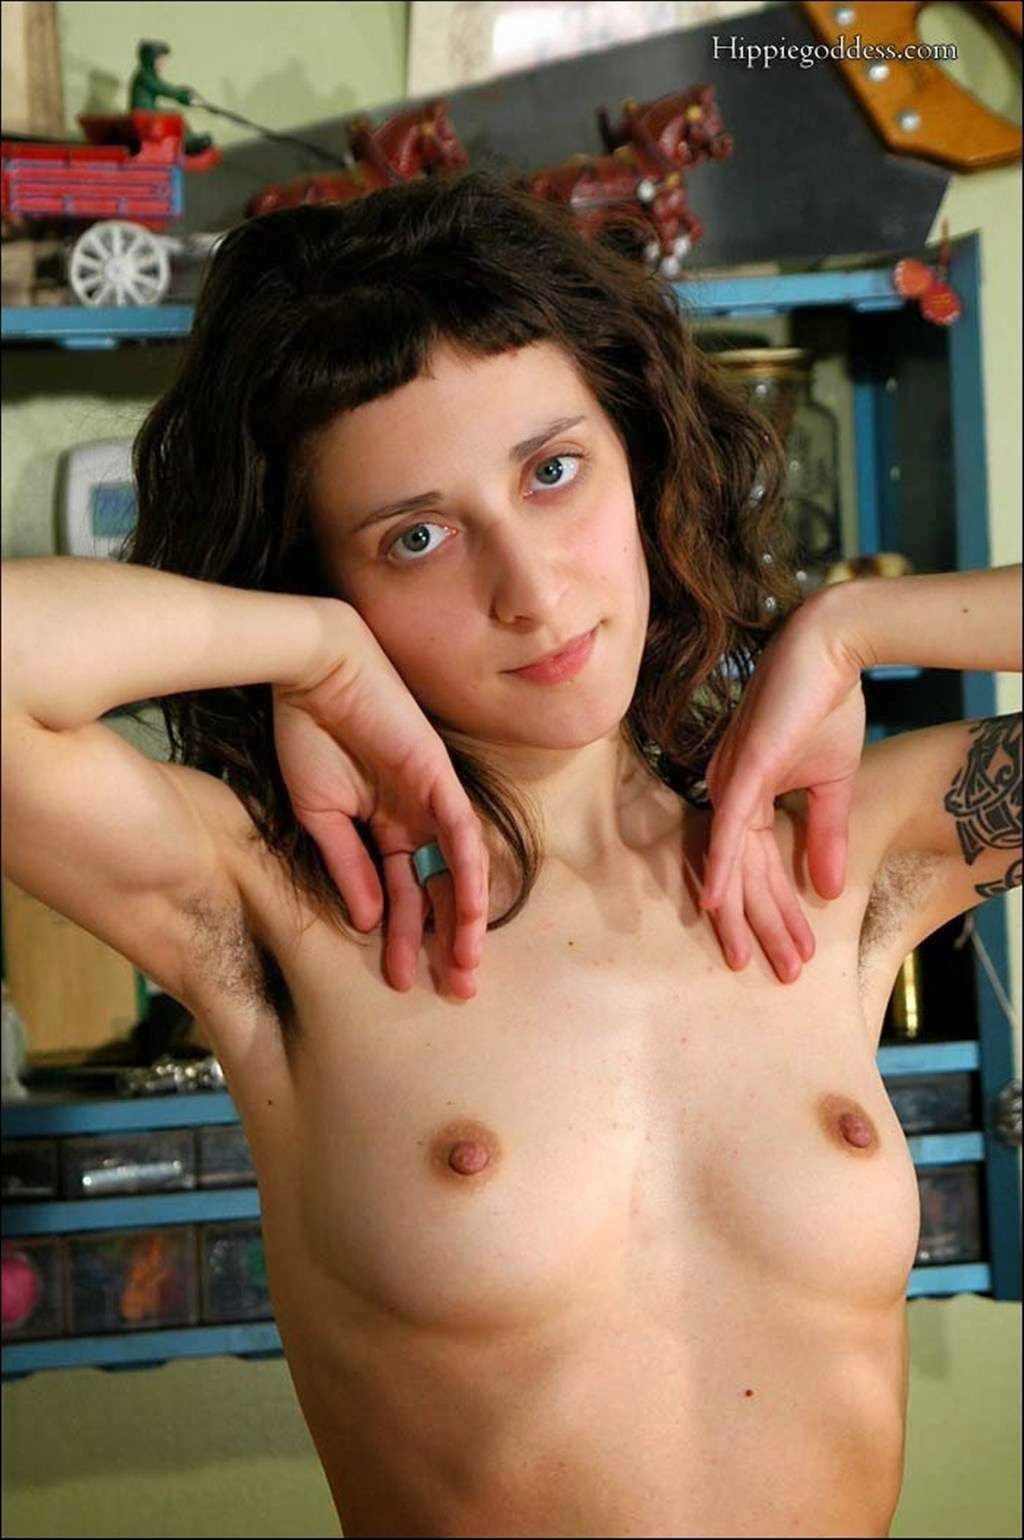 Sexy Teen Girls With Bushy Armpits And Pussy  Archivosmanga-6588